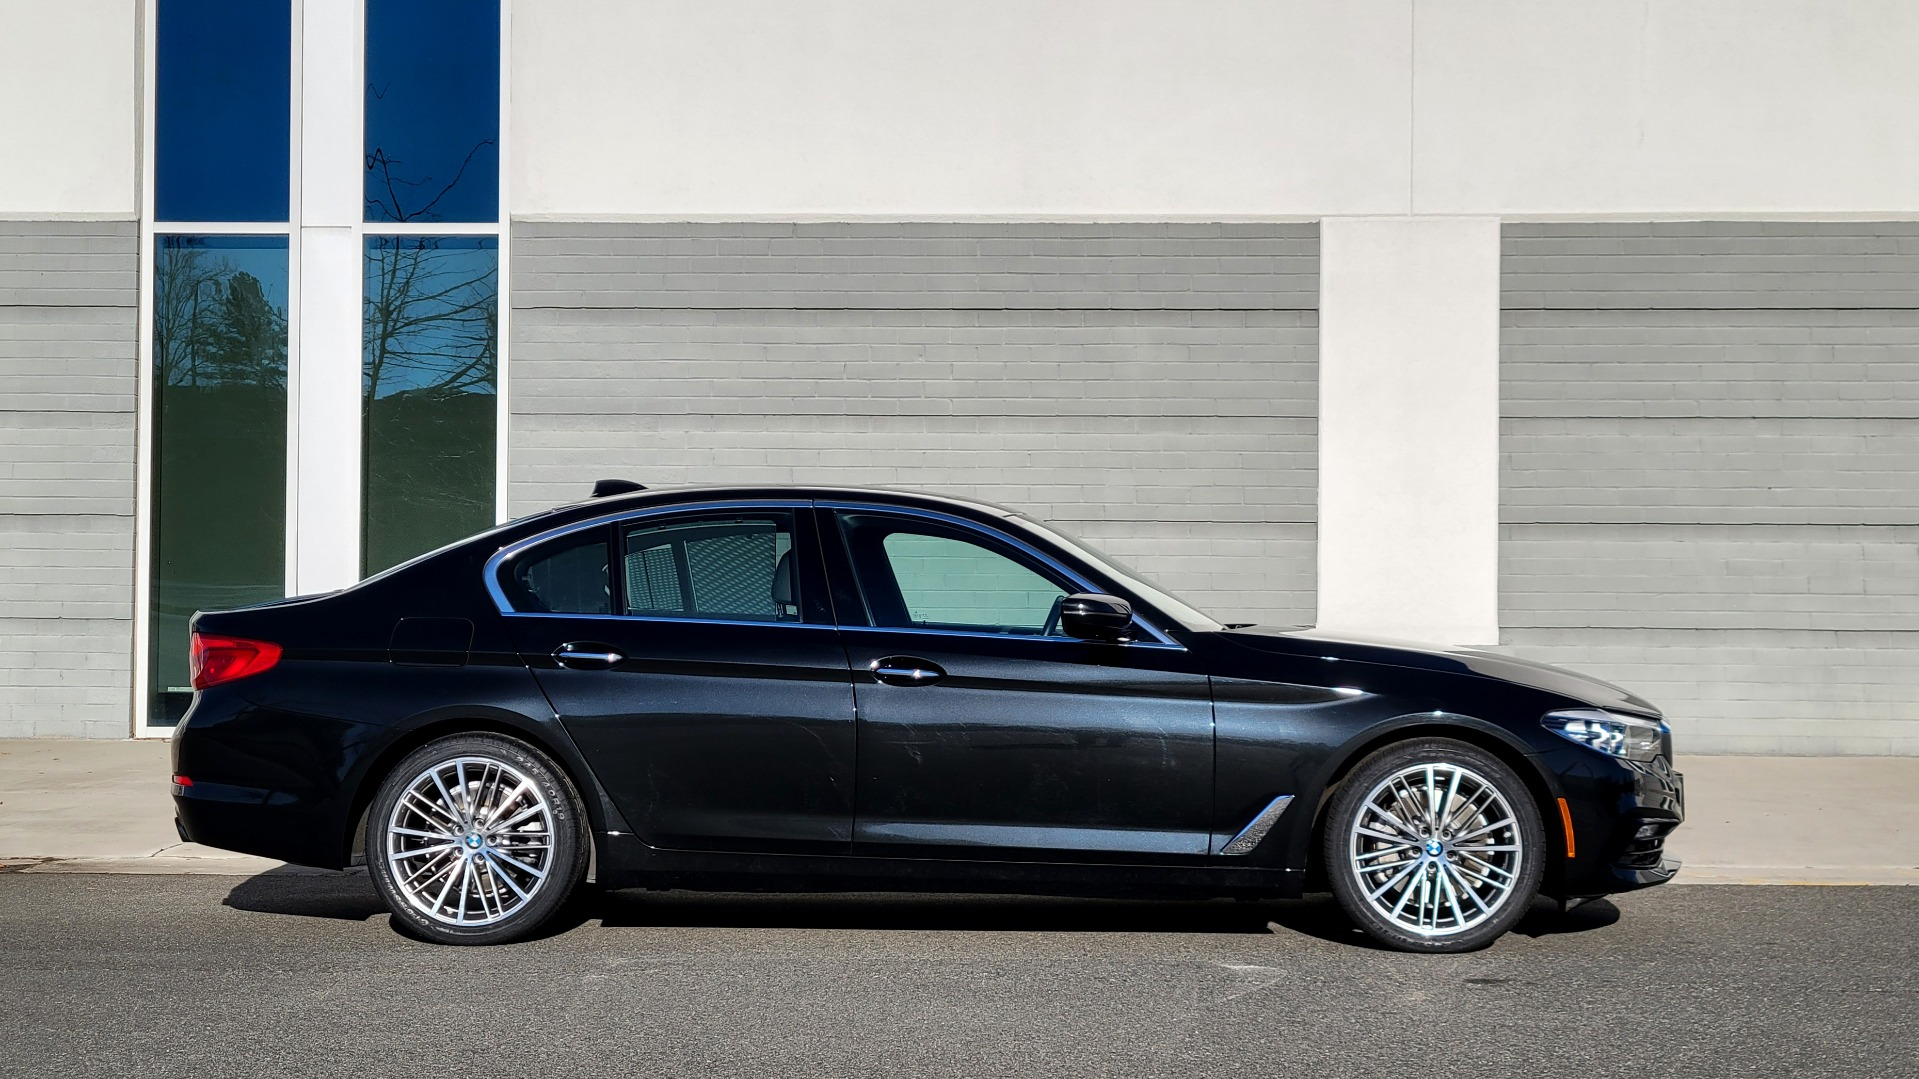 Used 2017 BMW 5 SERIES 530I XDRIVE PREMIUM / NAV / SUNROOF / PARK ASST / CLOD WTHR / REARVIEW for sale Sold at Formula Imports in Charlotte NC 28227 9